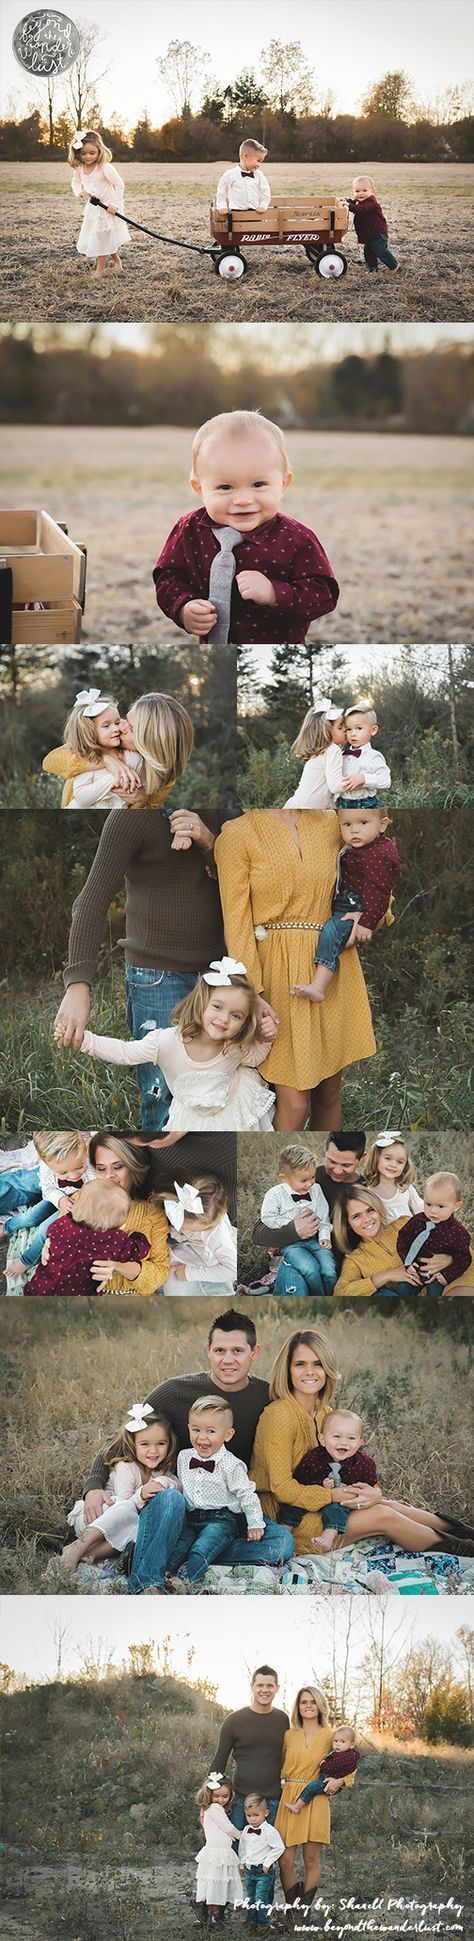 mommy and how to coordinate outfits for family pictures the best colors for family pictures holiday best of outfits for family christmas picture ideas